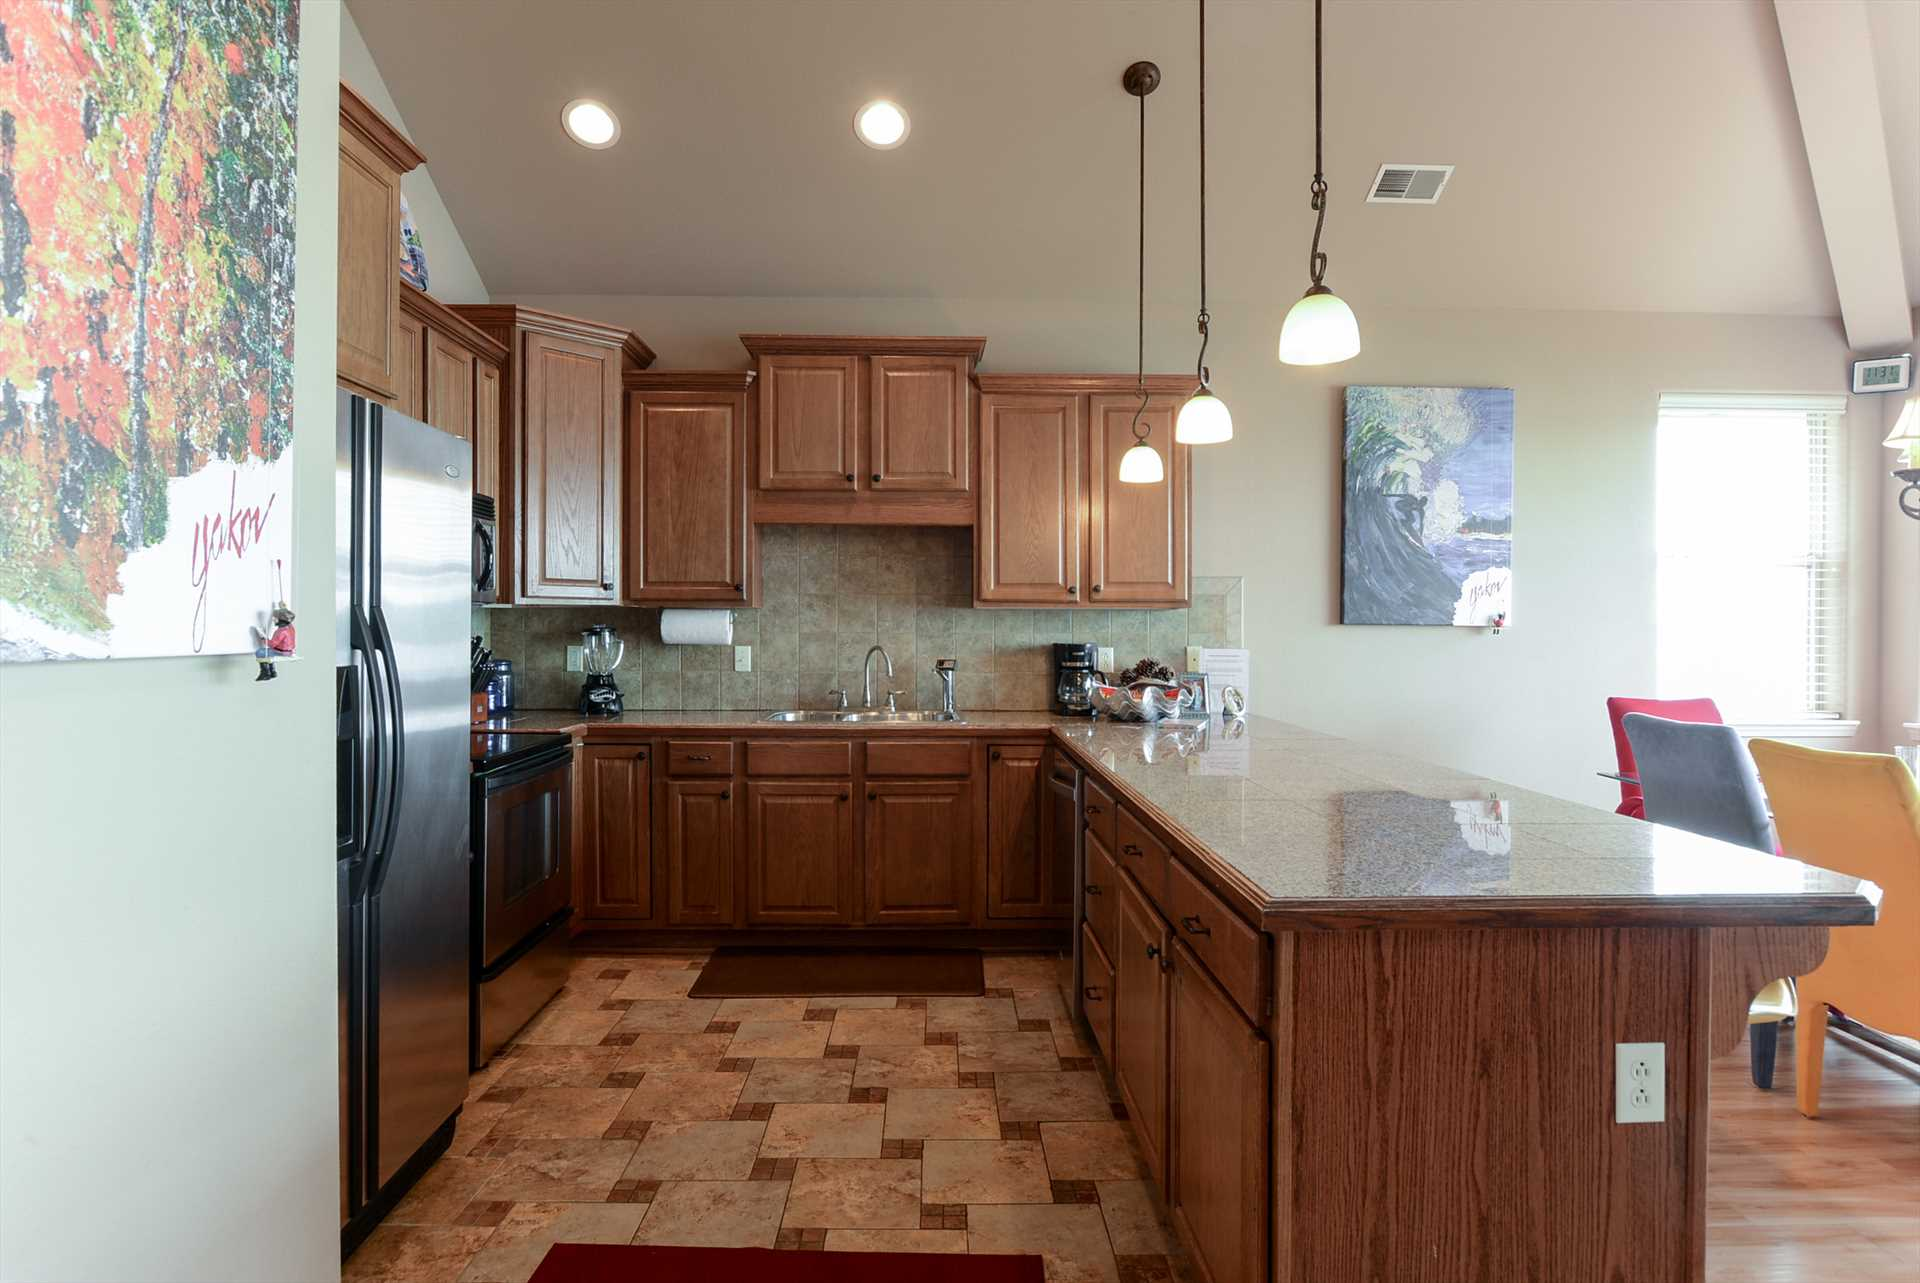 The fully-equipped kitchen is ready for any meal - large or